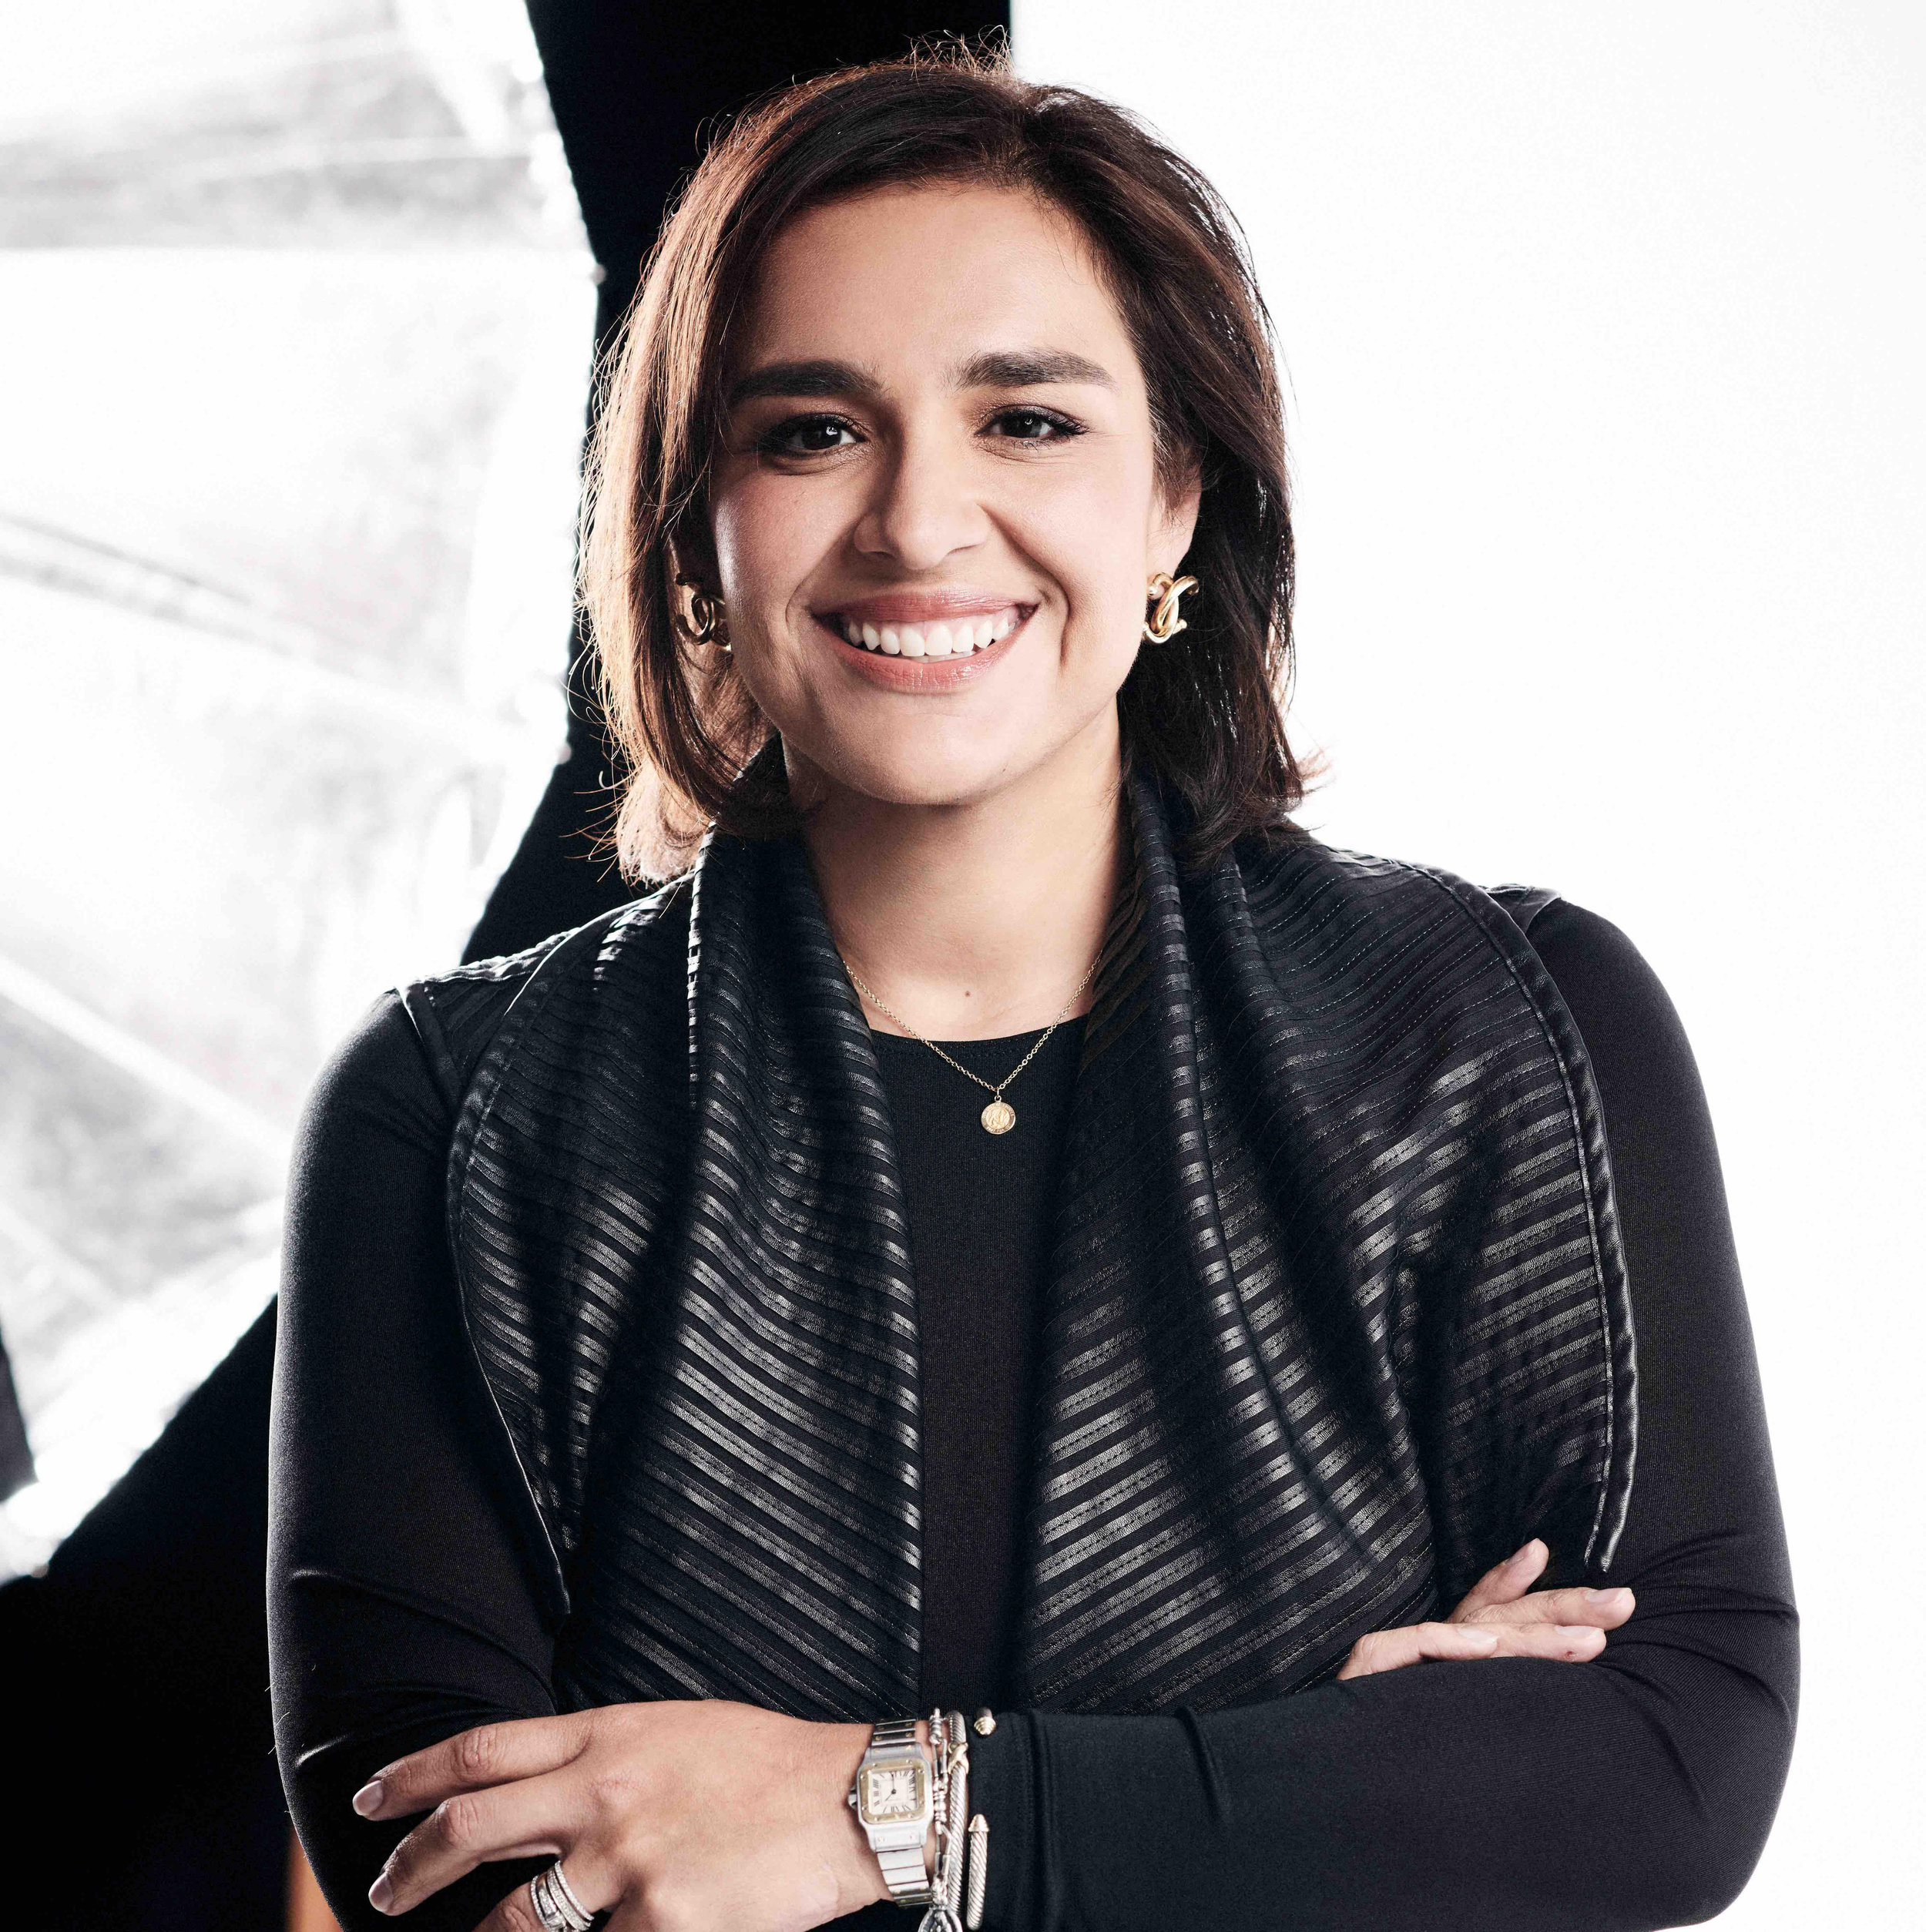 Theresa Wyatt, LA REYNA - Chief Growth Officer at LA REYNA.LA REYNA is a hybrid entertainment and advertising venture between El Rey and VICE Media. As CGO and an industry leader in understanding LatinX consumers, Theresa develops strategies for brands to authentically connect through content. -Prior to LA REYNA, Theresa served as VP of Corporate and Brand Development at El Rey Network where she oversaw corporate partnerships, social responsibility and community outreach programs.She has advised Fortune 100 brands, including Google, Target, and AT&T on go to market strategies for new platforms targeted at the US English speaking LatinX consumer. Theresa served as a National Co-Chair of Latino Outreach for the Committee to Elect Hilary Clinton and a Founding Member of the Latino Outreach effort of the 2012 reelection campaign of Barack Obama.Theresa has JD and MBA degrees from St. Mary's University and a Bachelors of Arts from Texas A&M University. She resides with her husband and two sons in San Antonio, Texas.